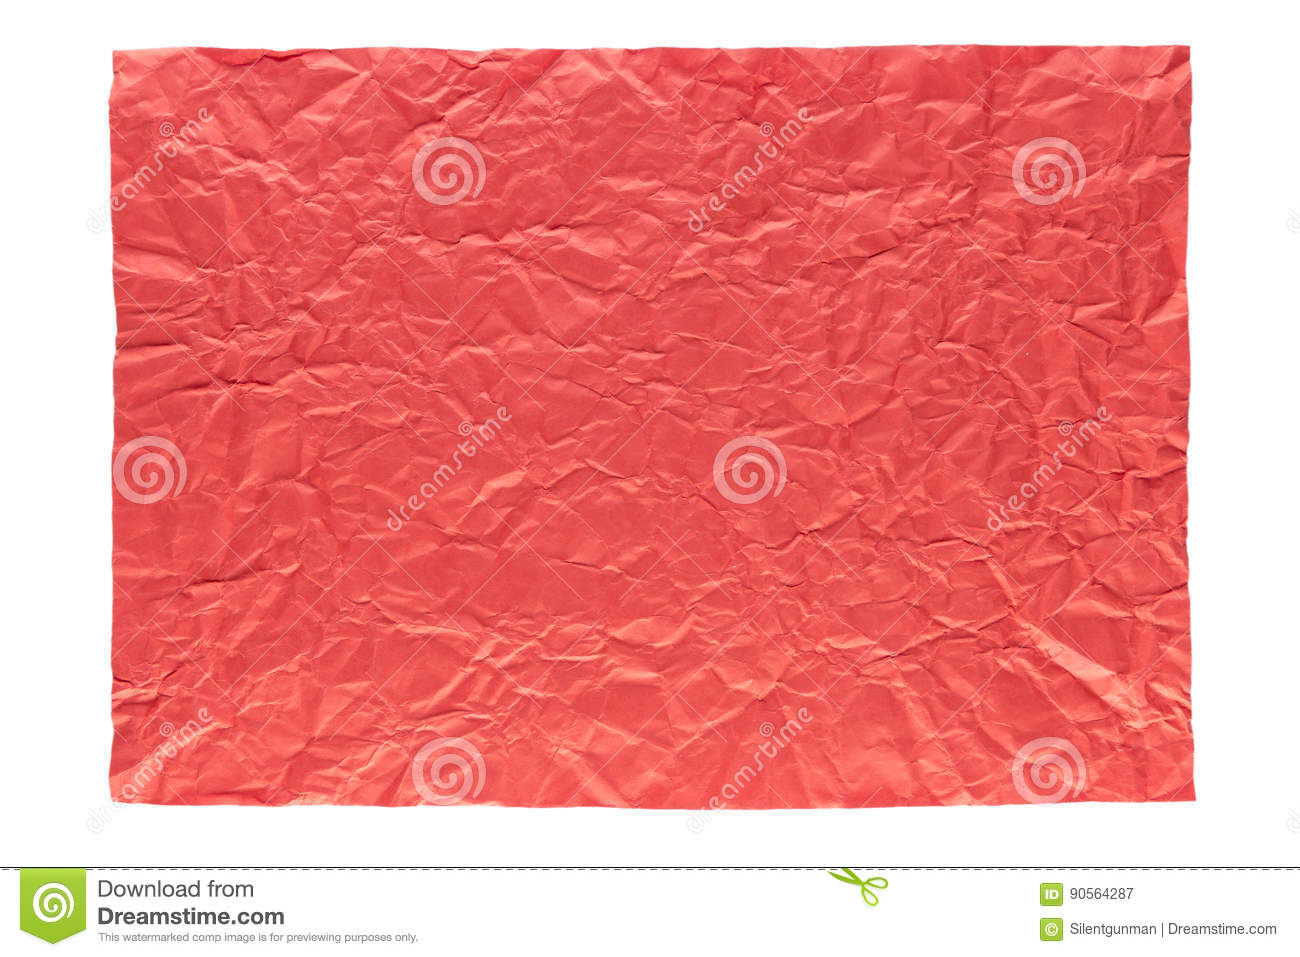 Wrinkled red page